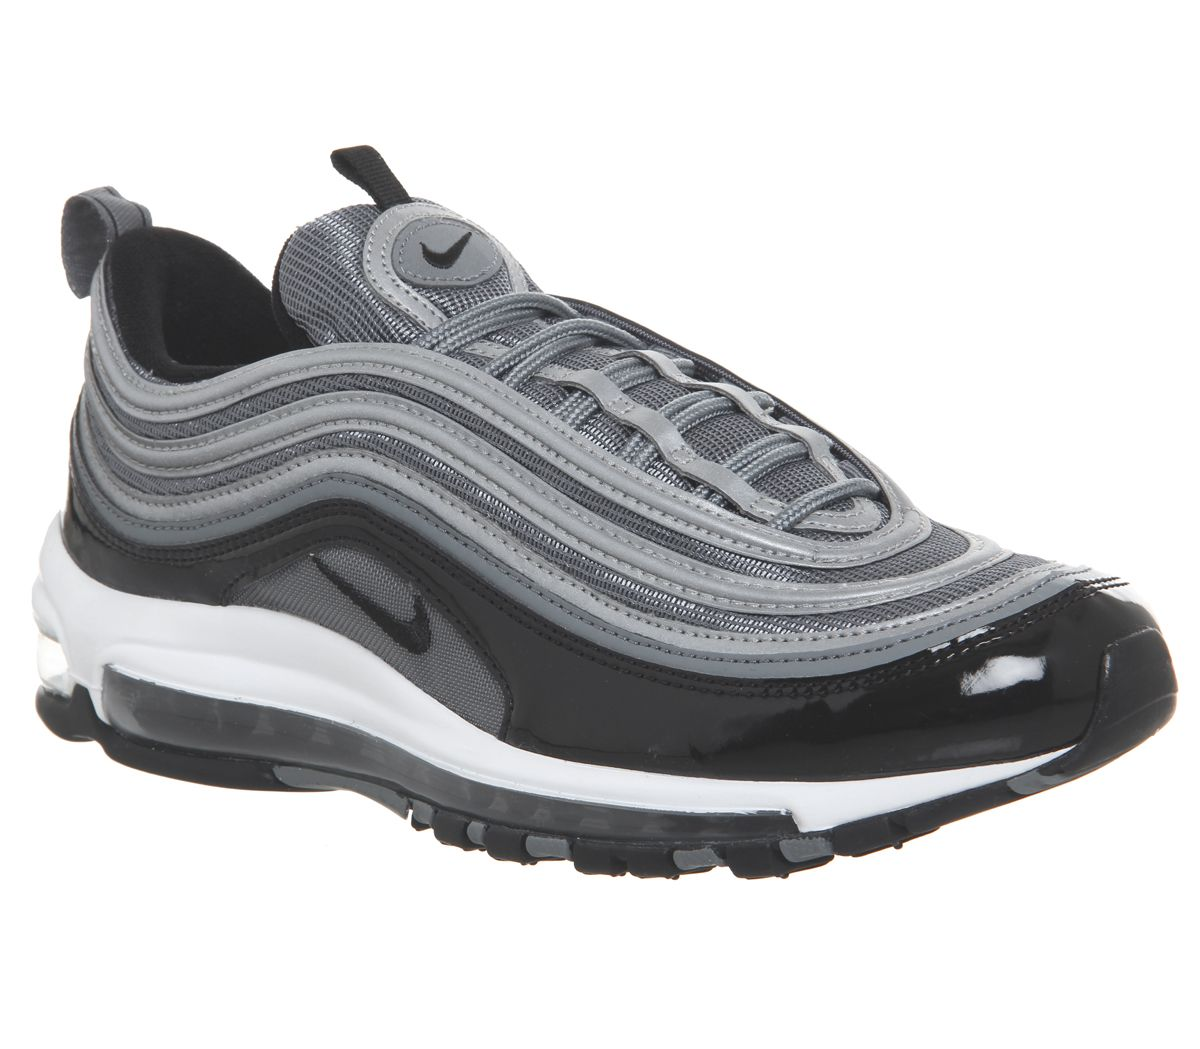 957e8d40d1 Nike Air Max 97 Trainers Cool Grey Black White - His trainers